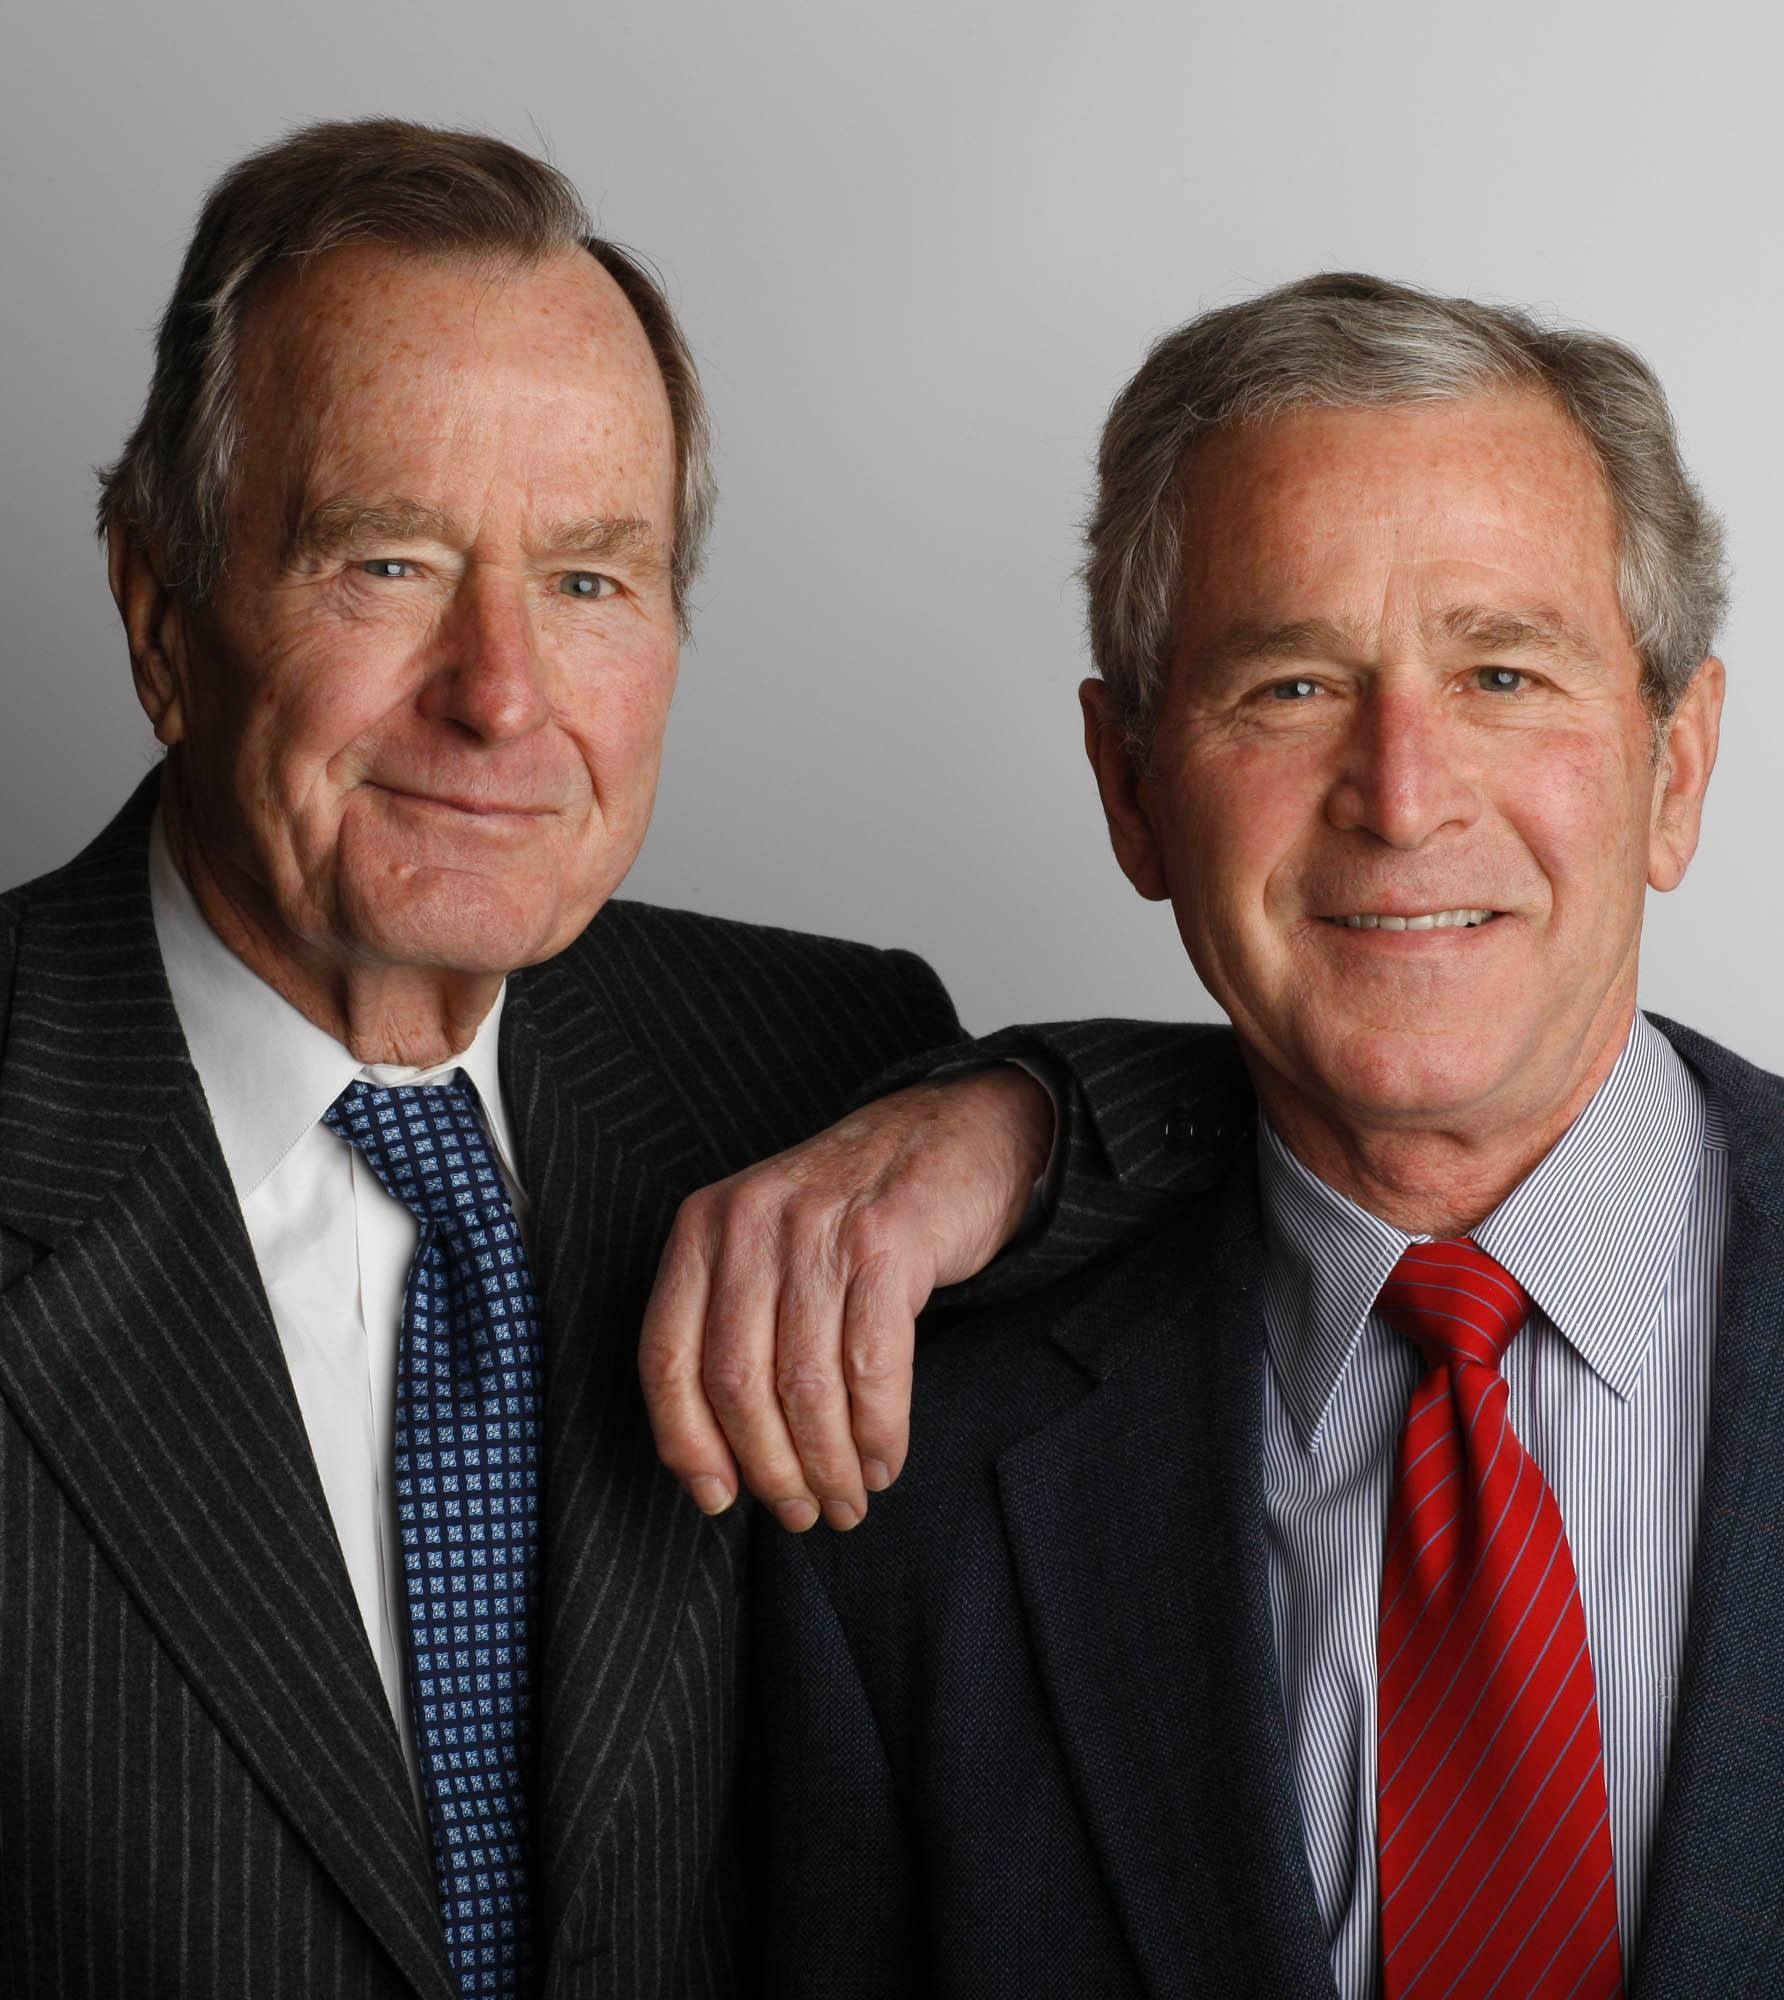 George W. Bush coming to Naperville for book signing